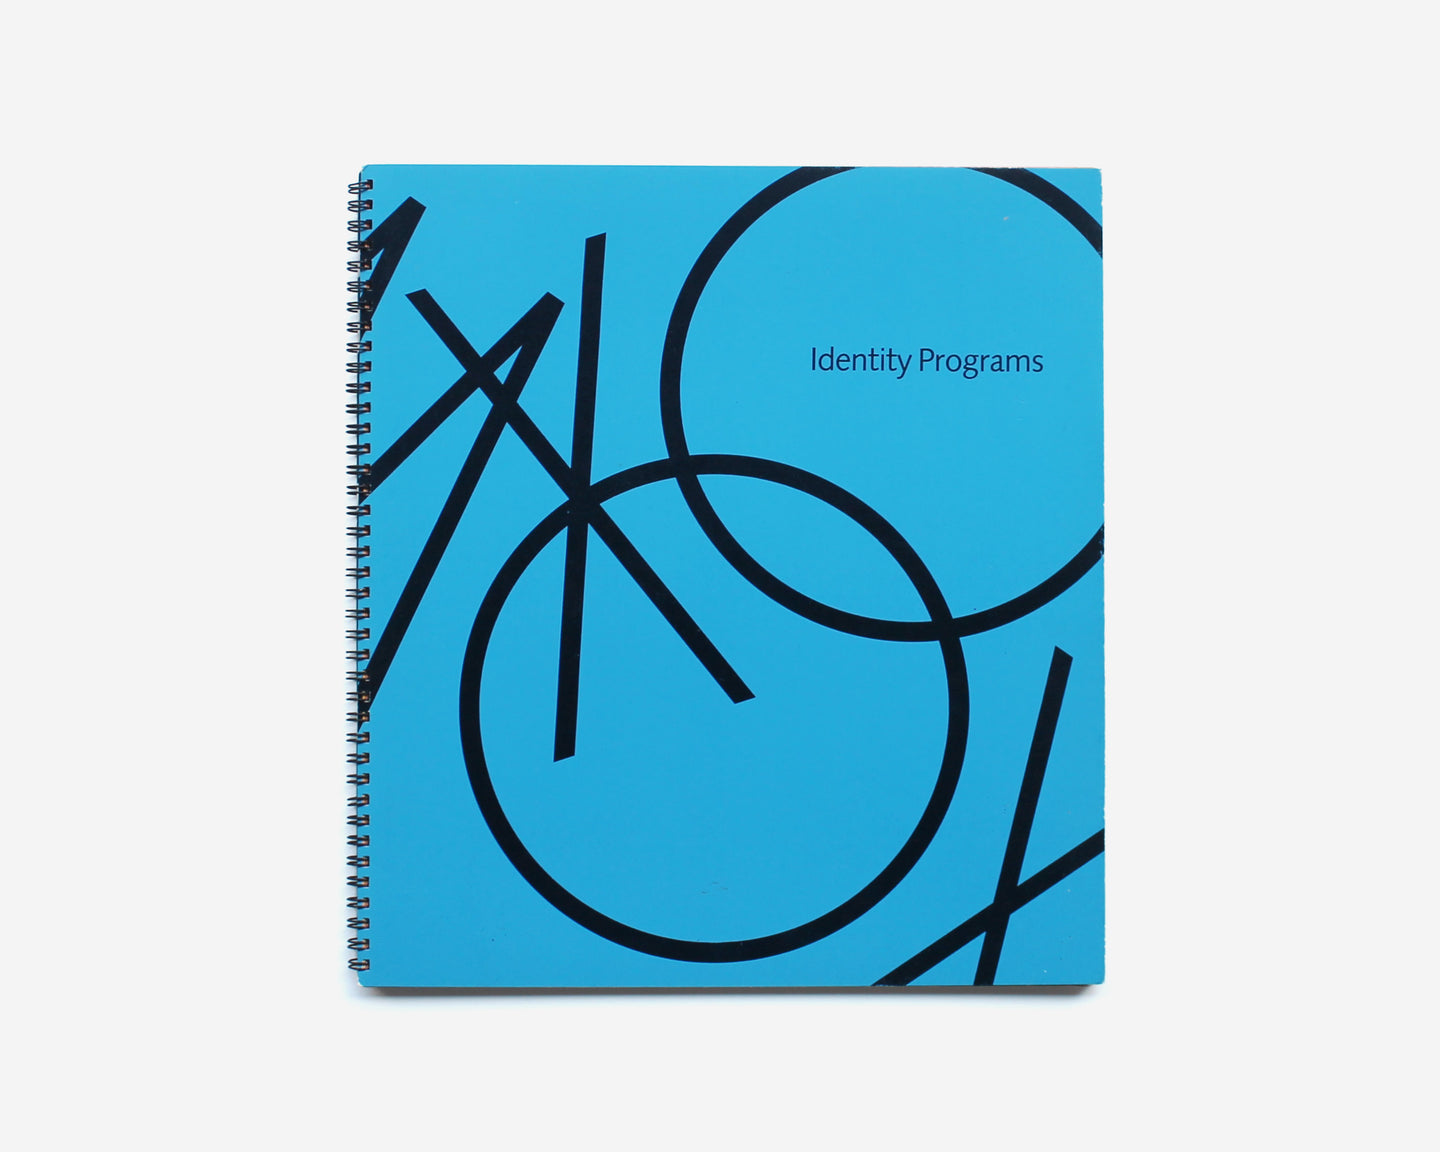 Identity Programs by Noel Martin [Promotional Booklet]